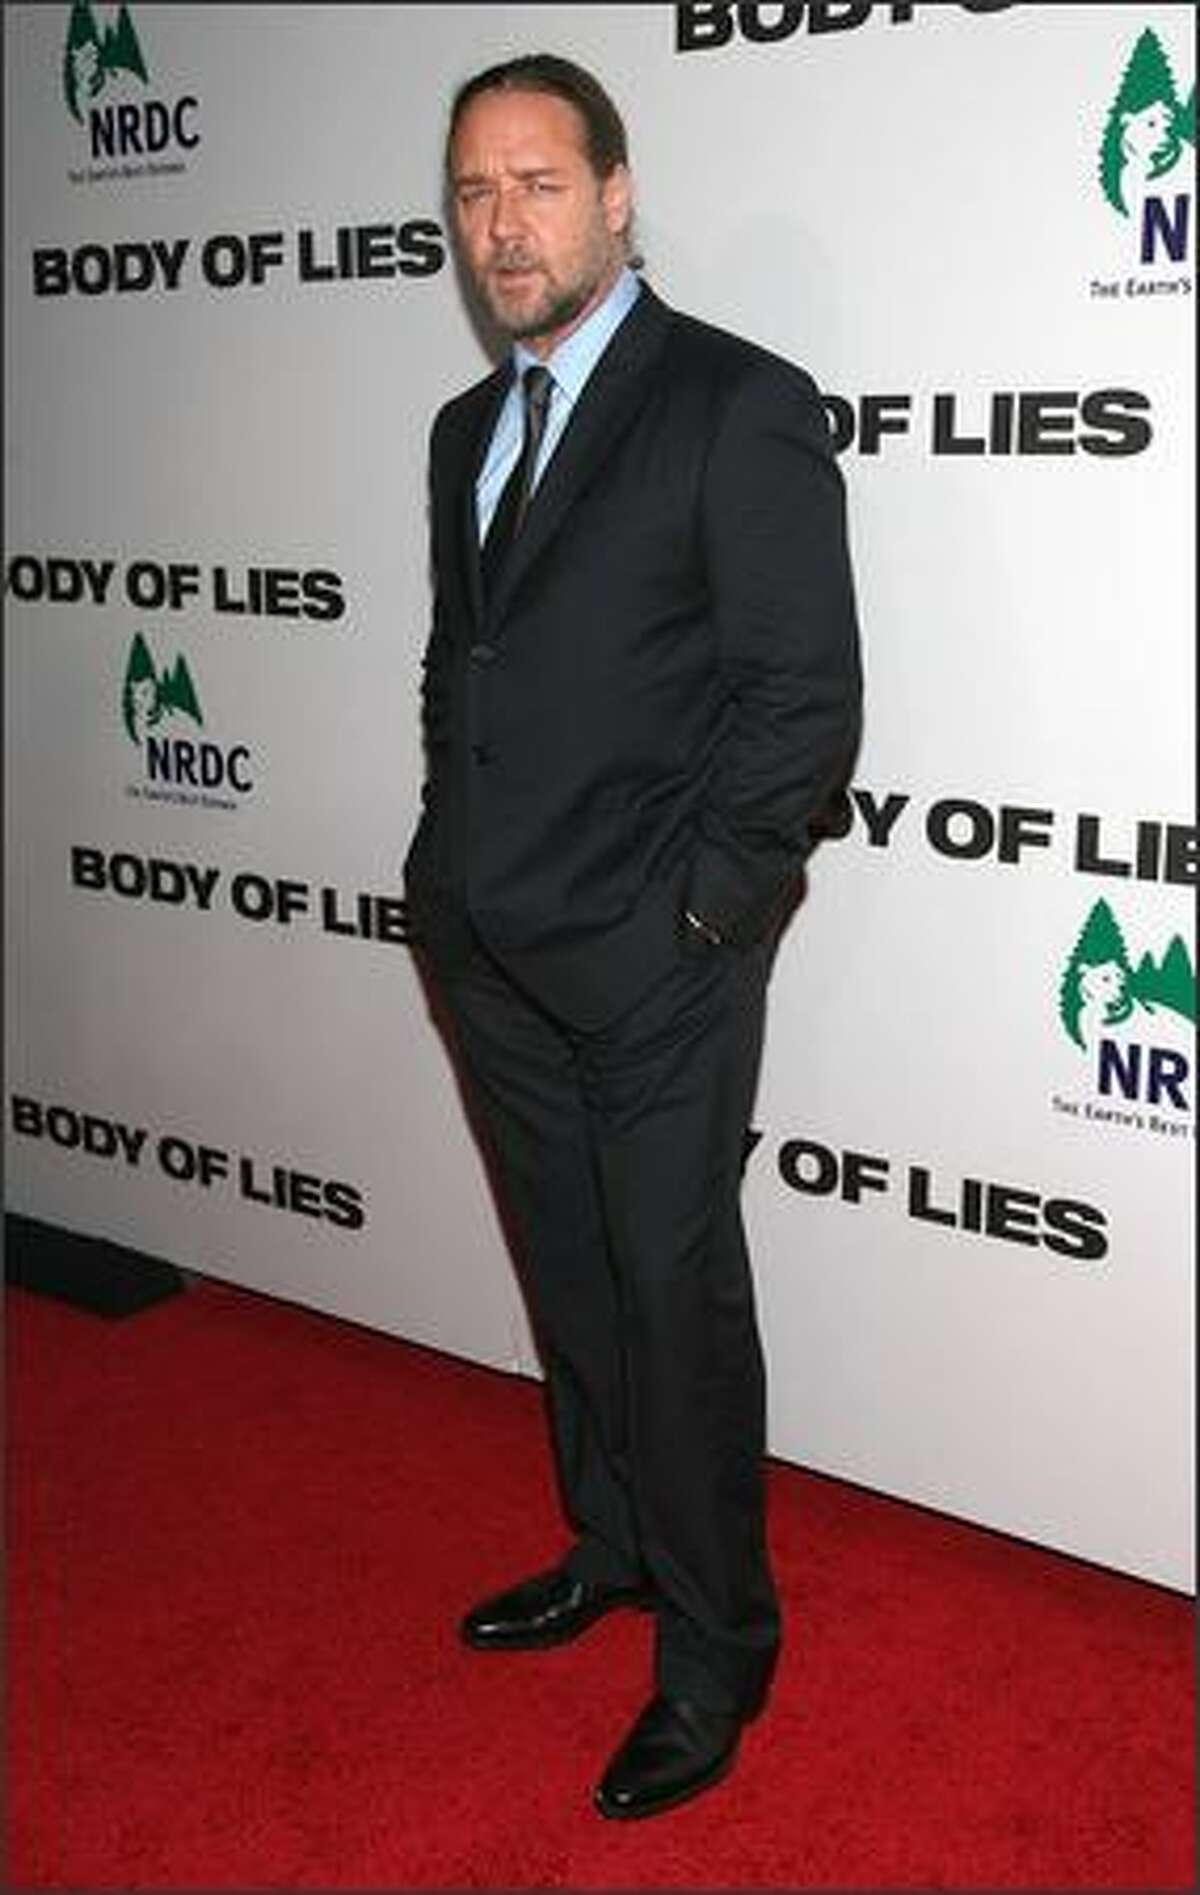 Actor Russell Crowe attends the premiere of